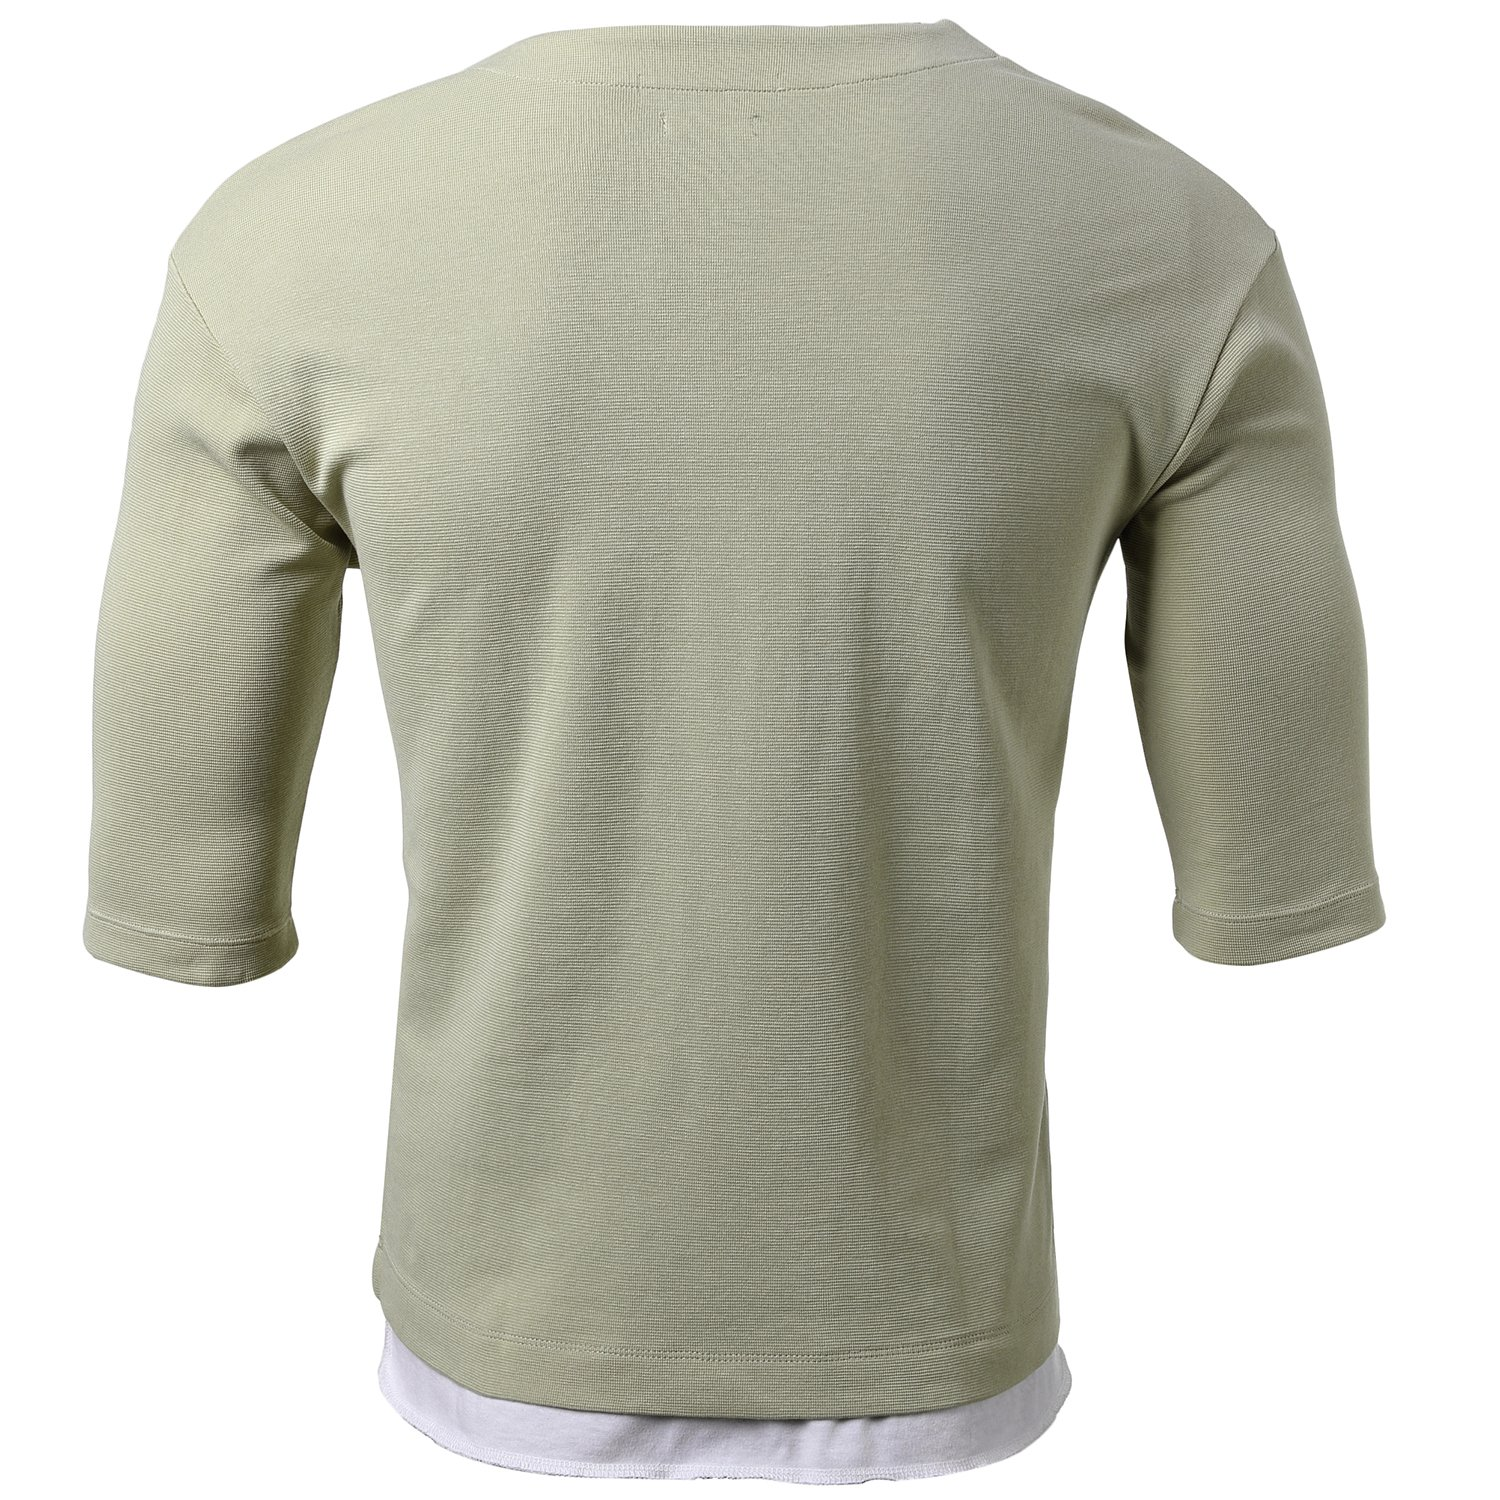 38e58cf87b0d79 Amazon.com  FLY HAWK Mens Casual Relaxed Fit T-Shirts for Men